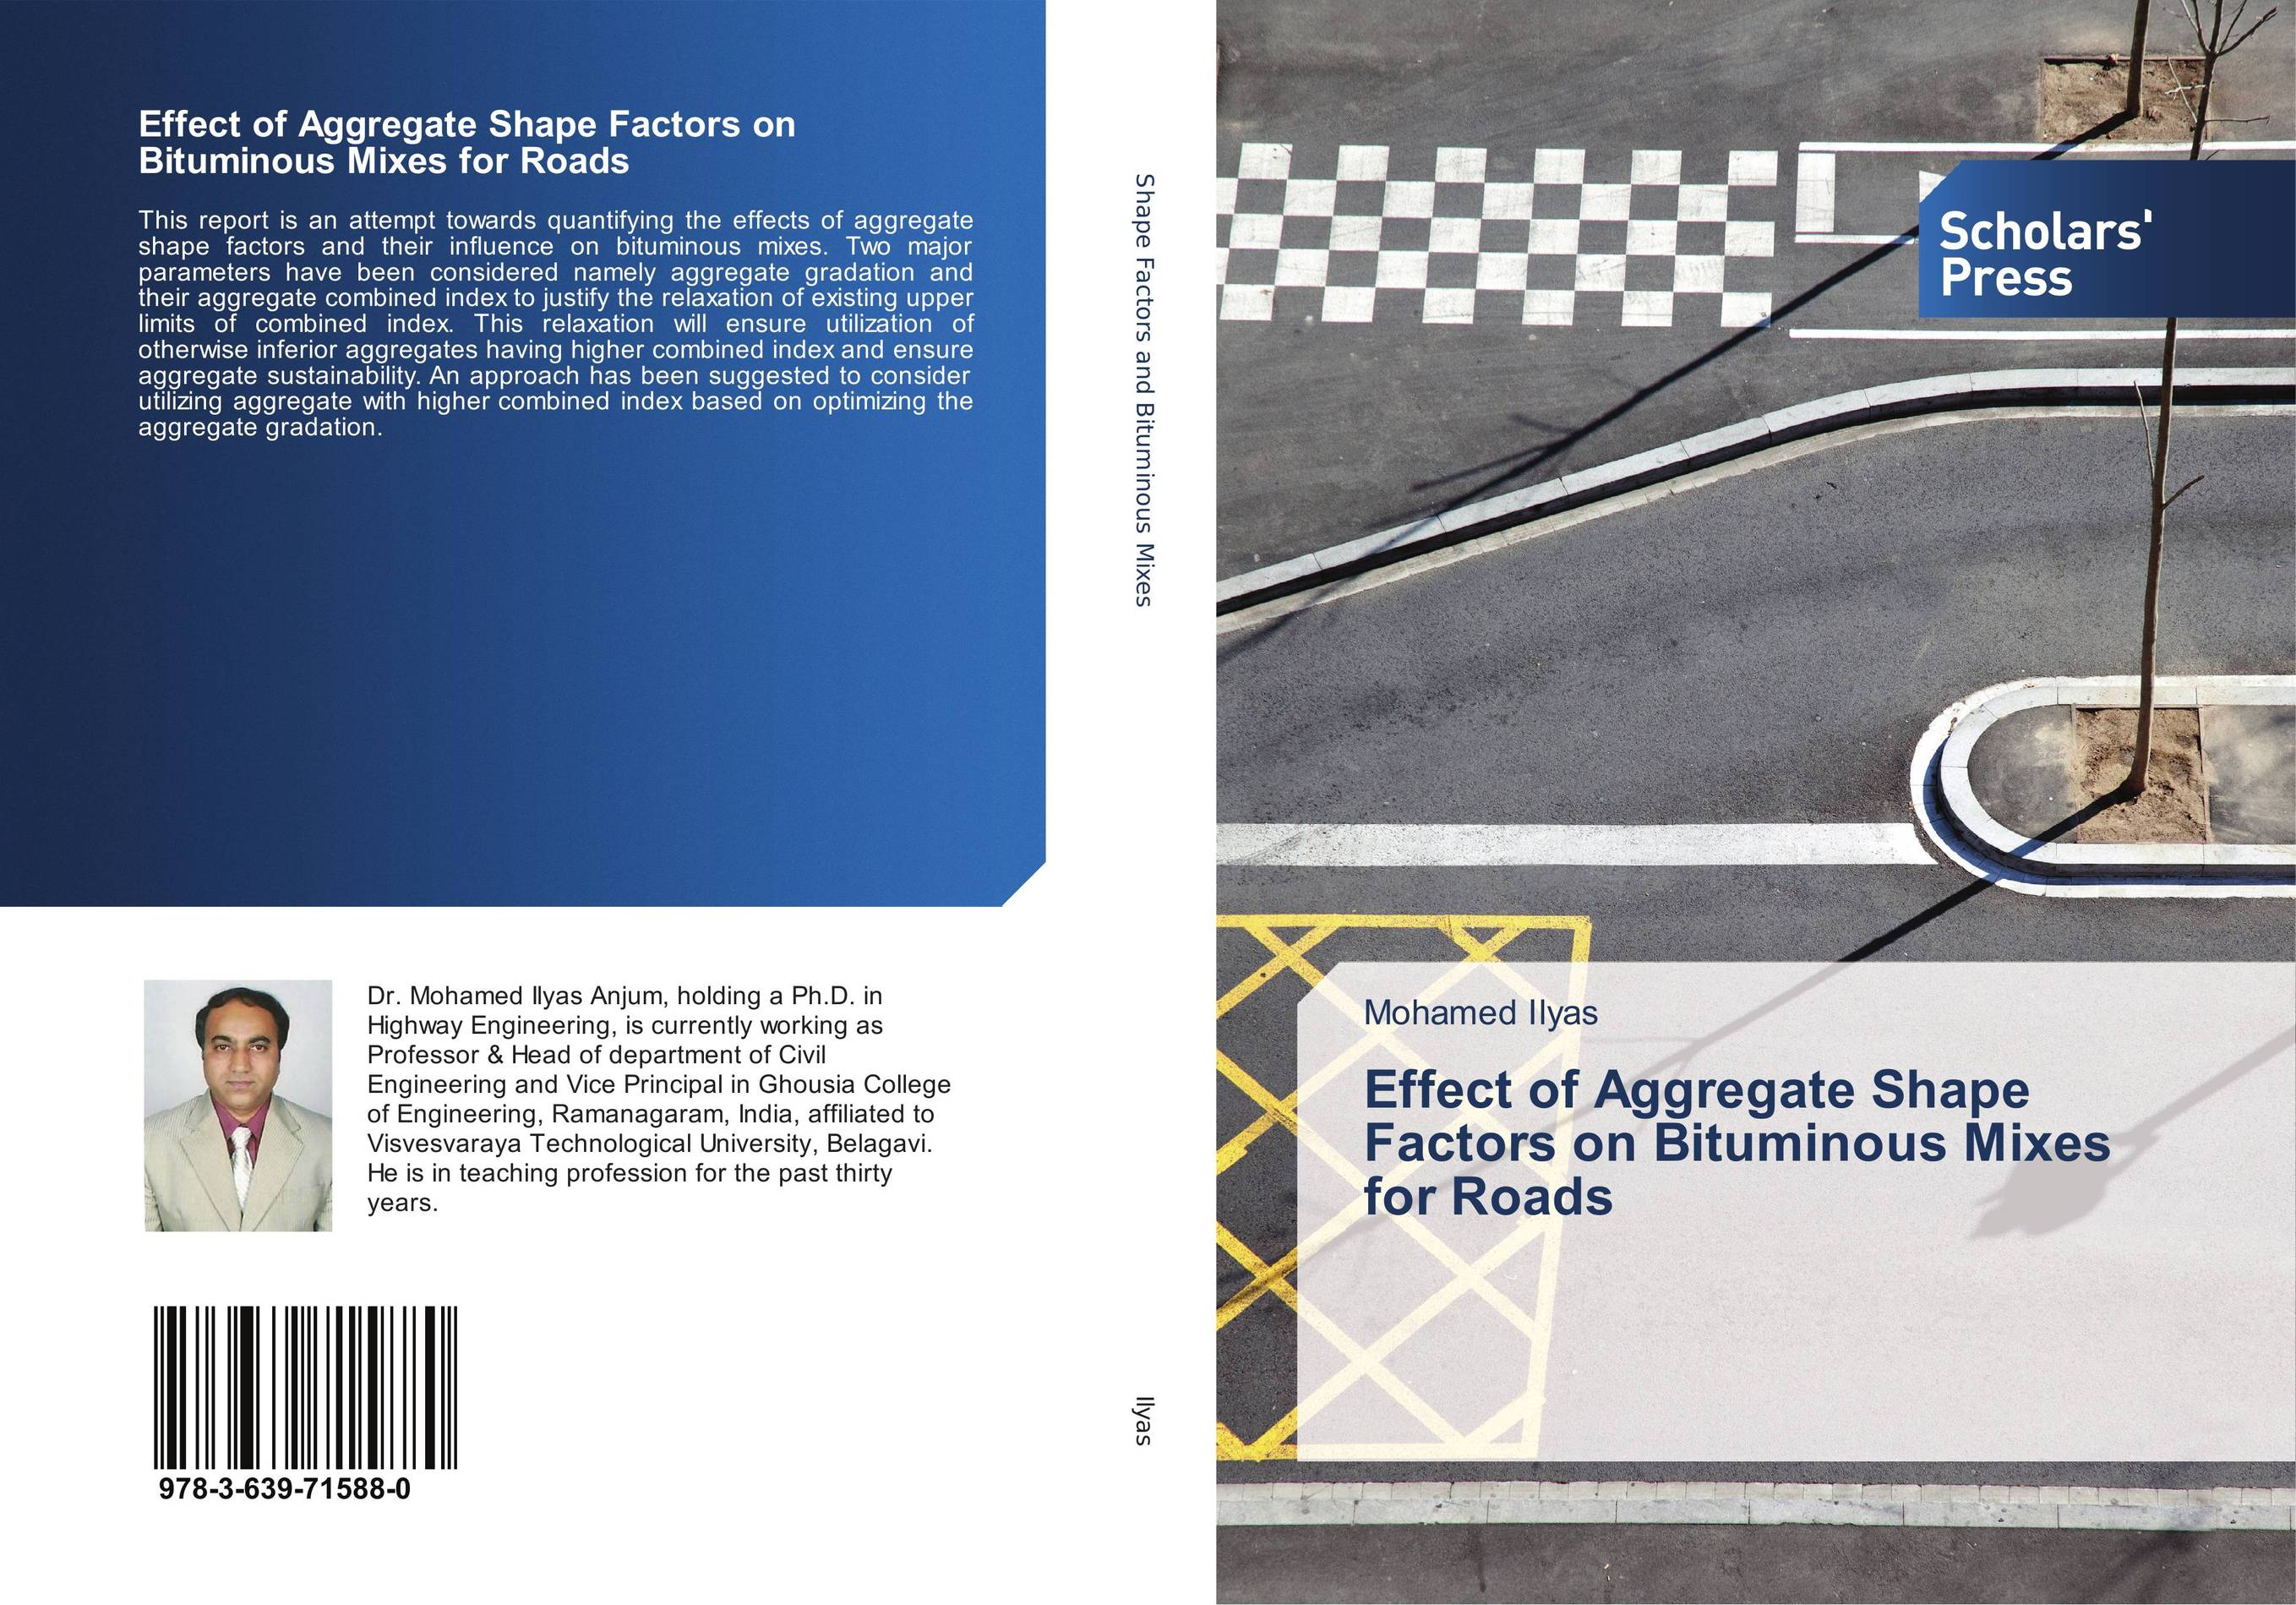 Effect of Aggregate Shape Factors on Bituminous Mixes for Roads wiener index of graphs